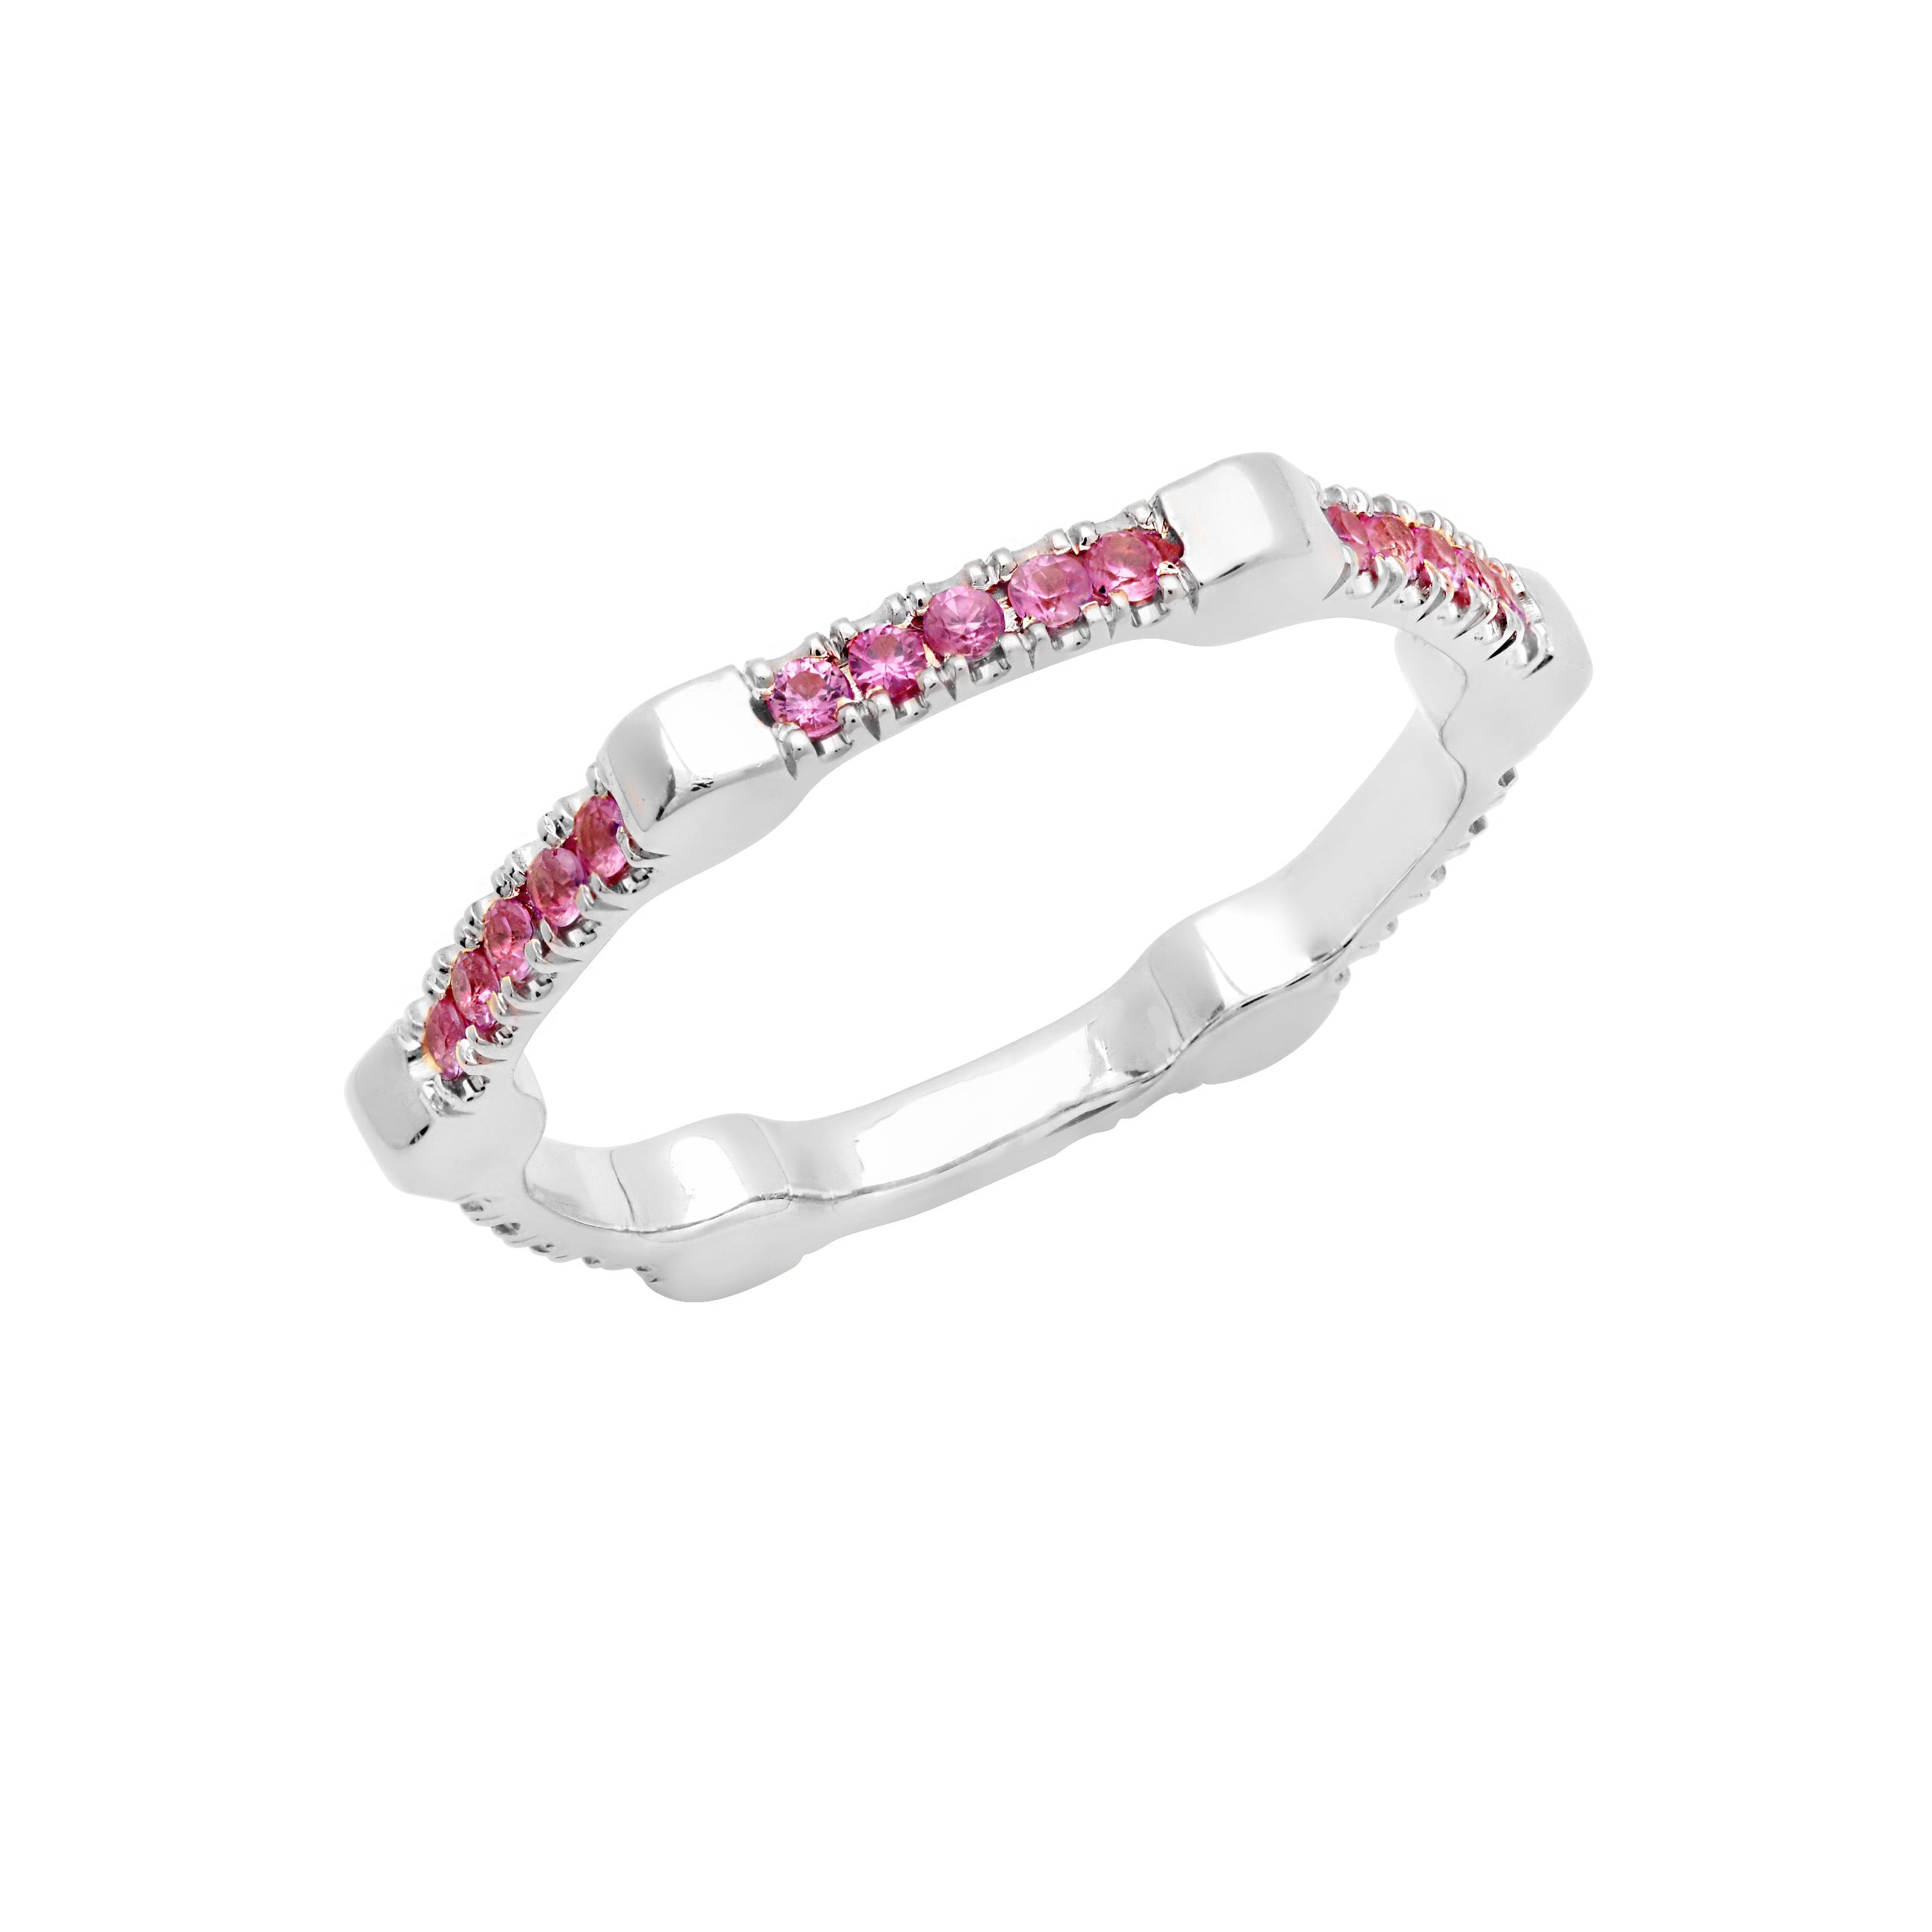 Cage Band | White Gold with Pink Sapphires